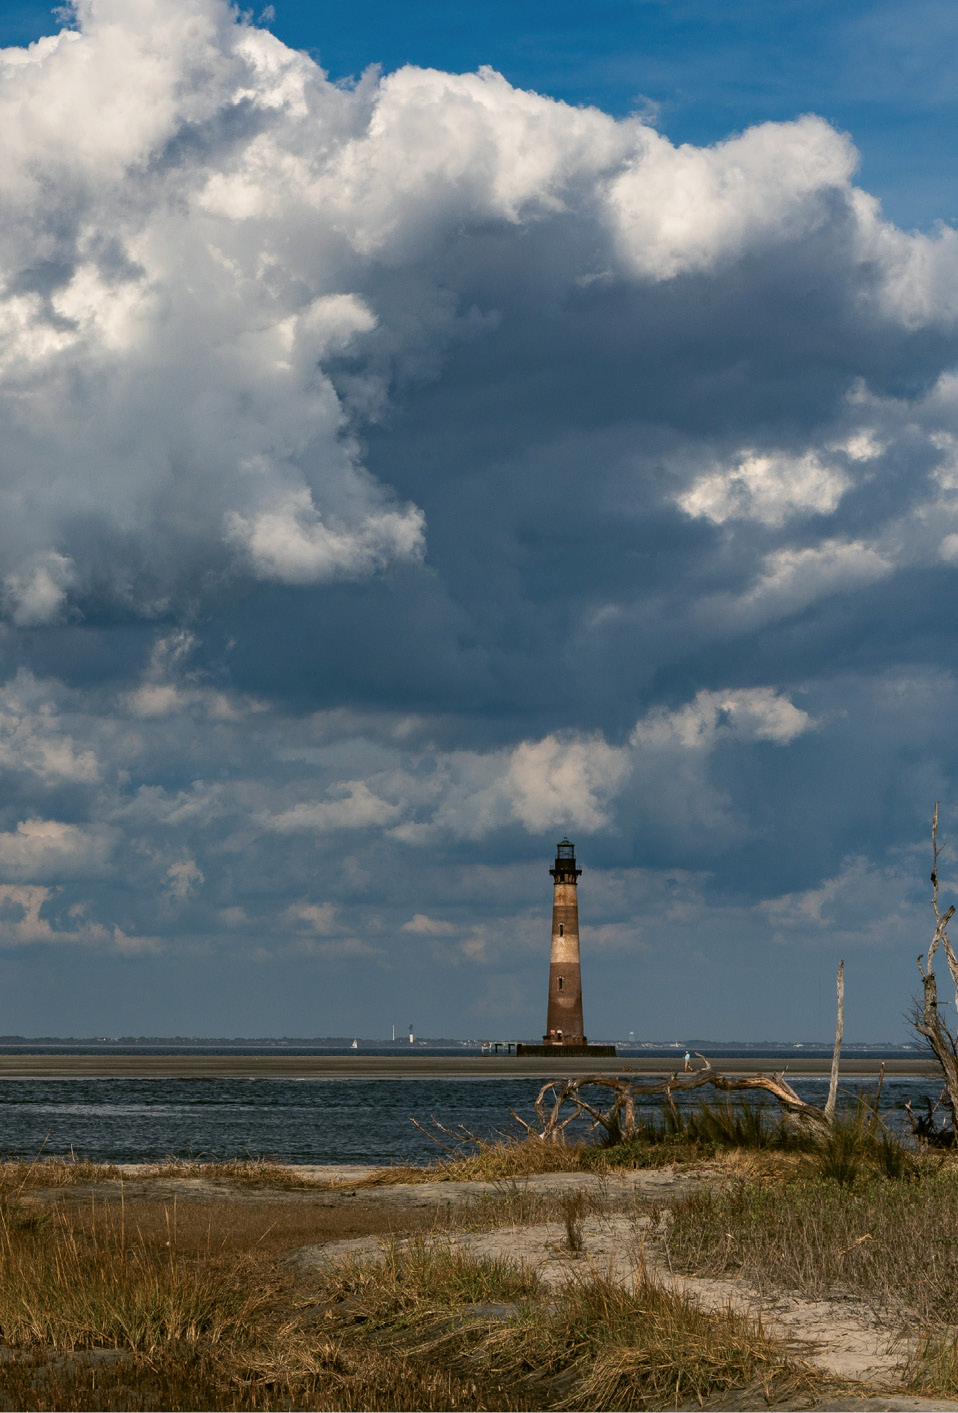 Located at the northeastern tip of Folly, the Charleston County Parks-maintained Lighthouse Inlet Heritage Preserve is a great vantage point for viewing the Morris Island Lighthouse.